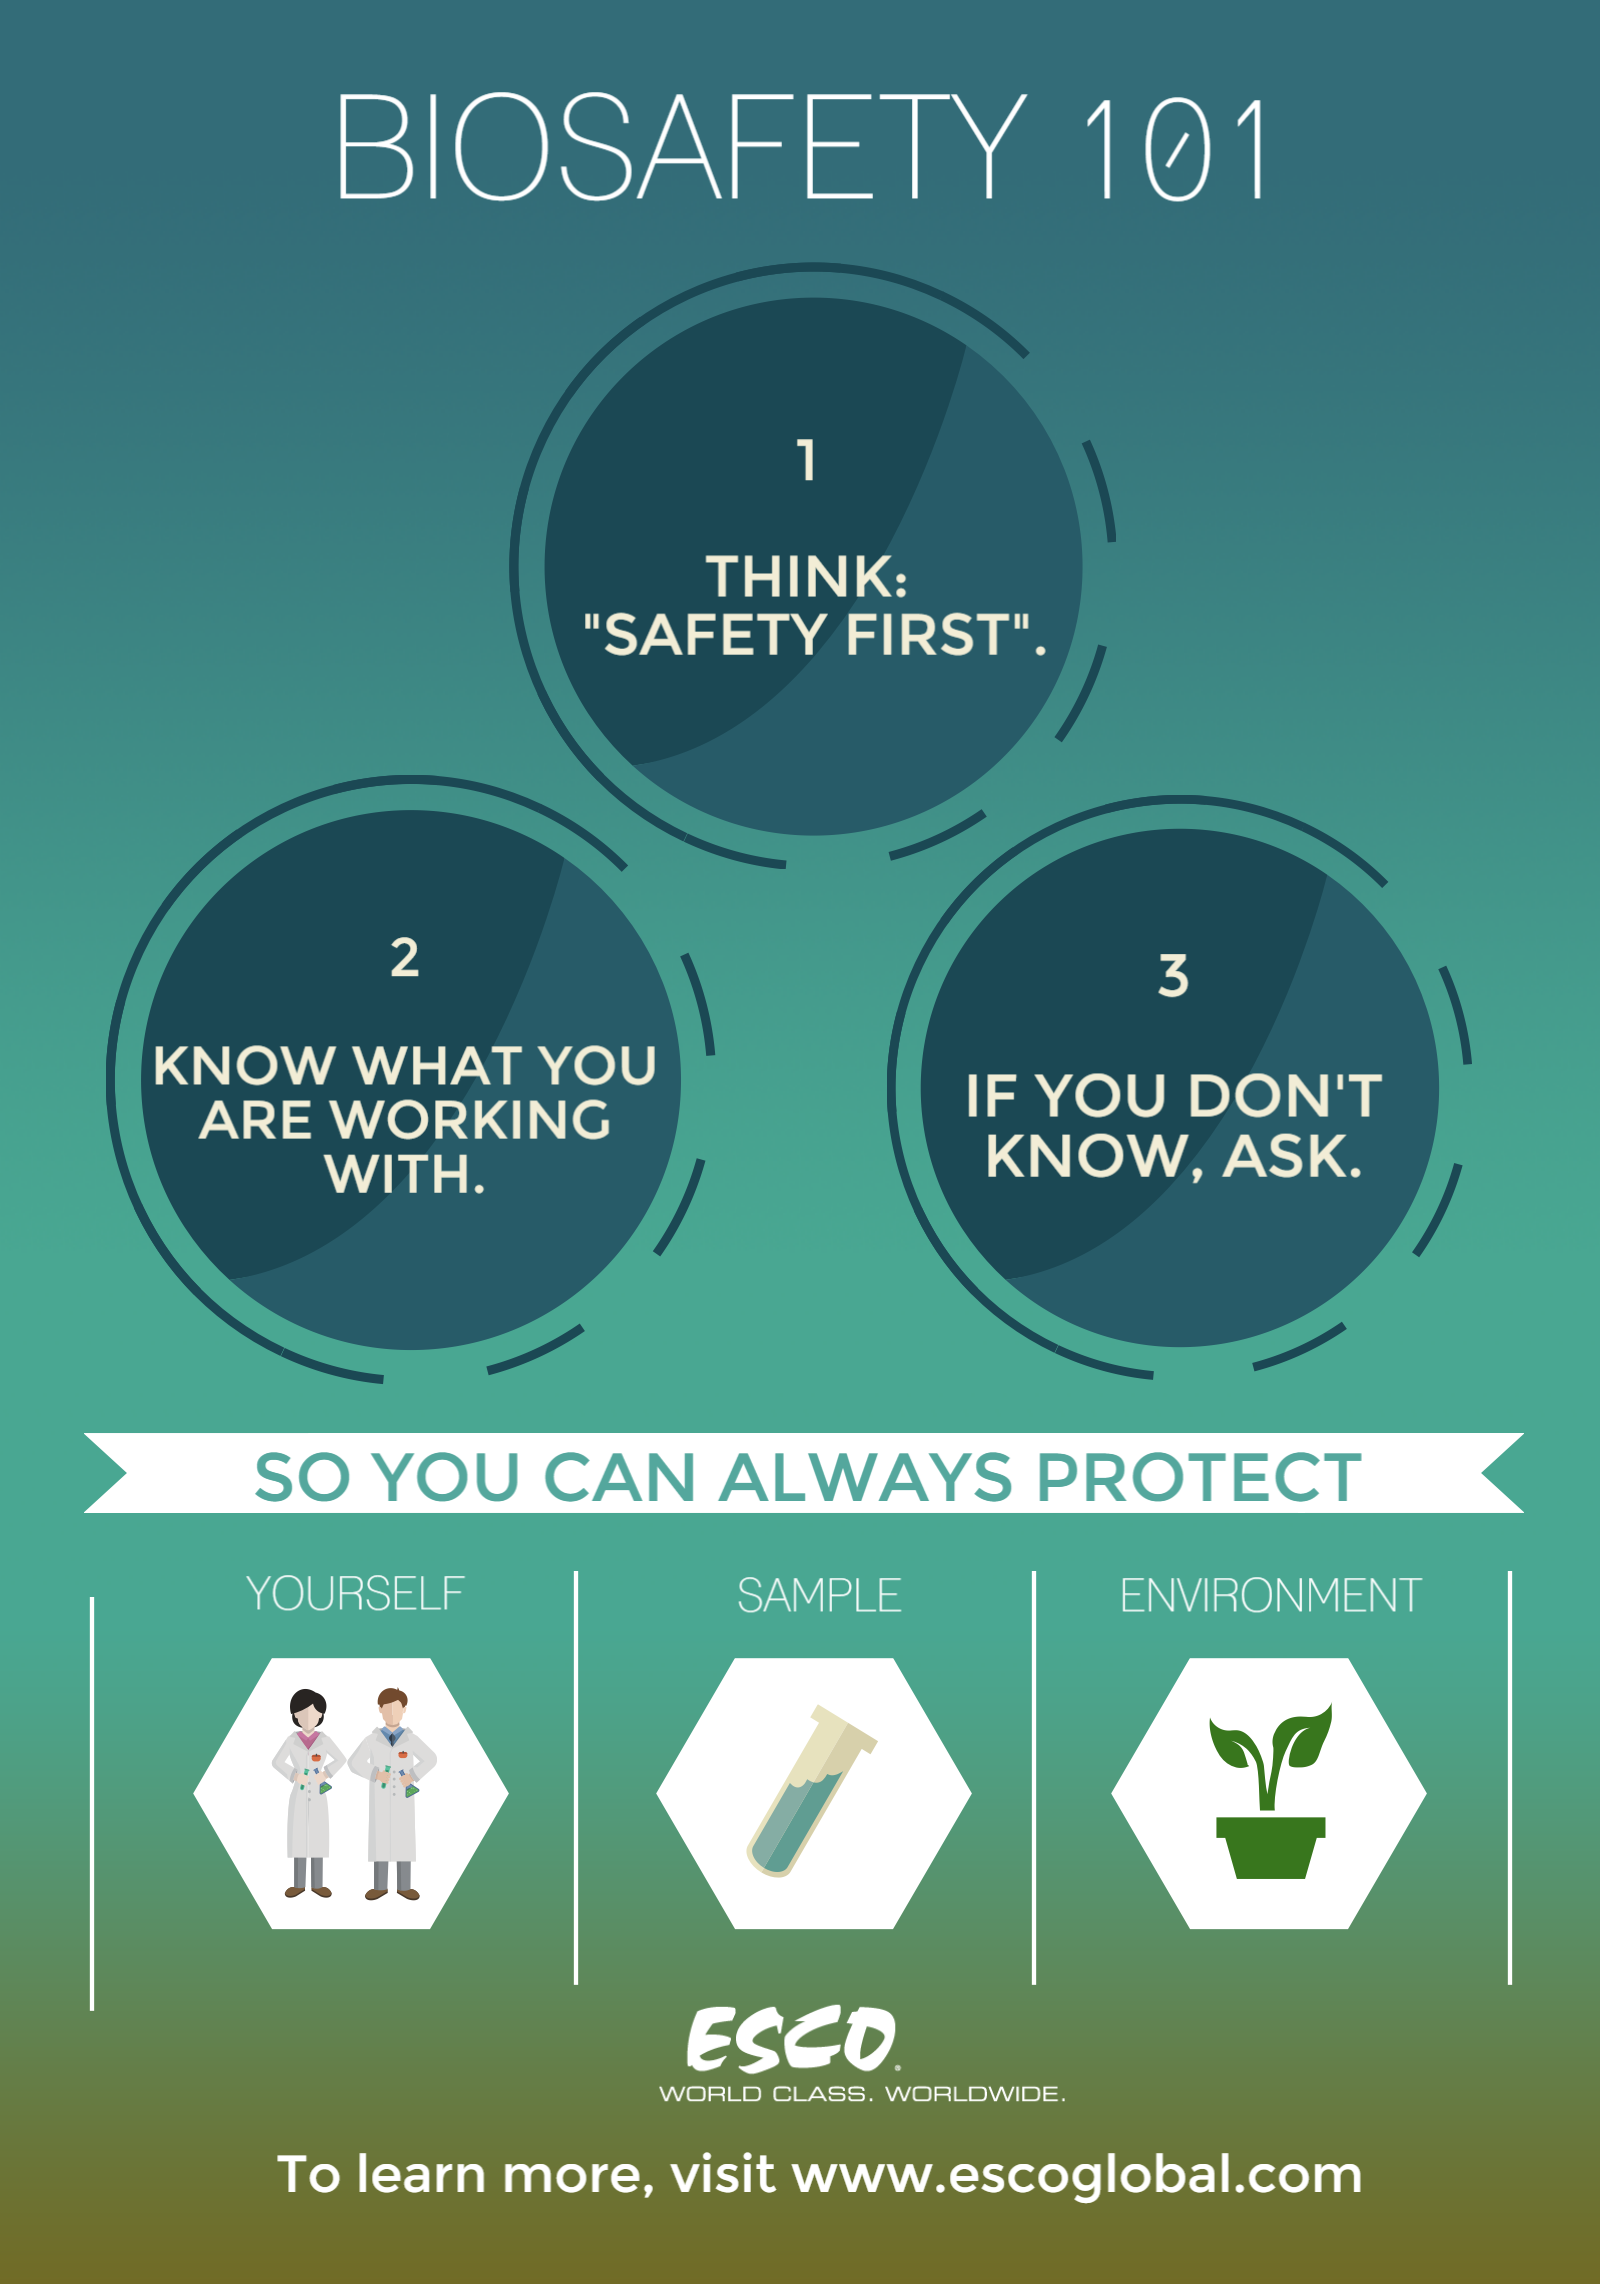 Practice Biosafety with ESCO Biosafety Cabinets! Protect yourself ...